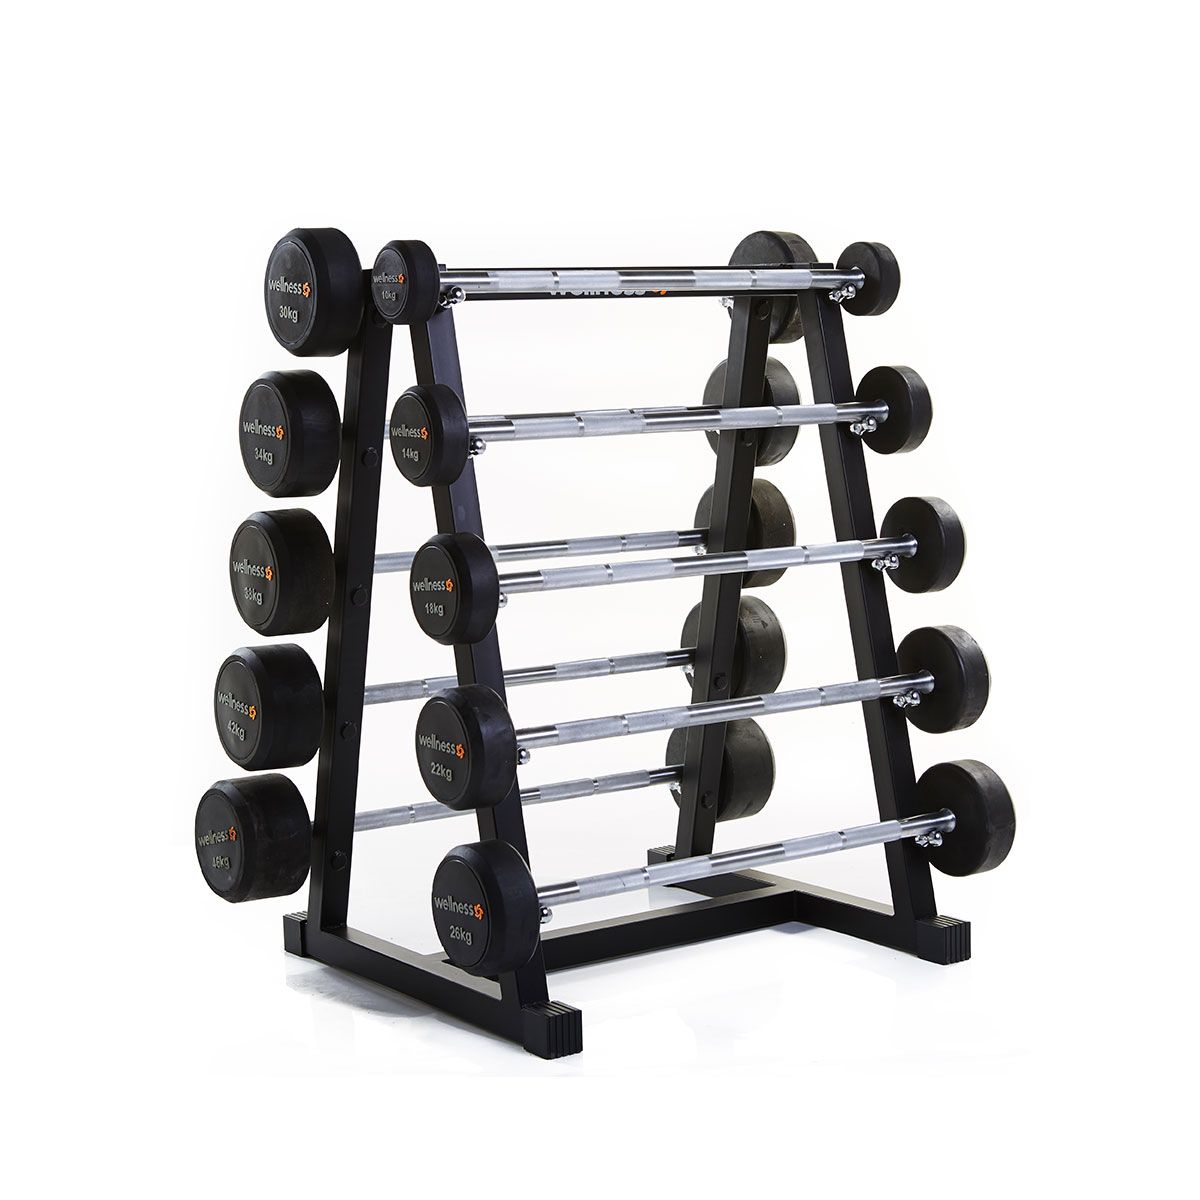 Kit 10 Barras Montadas Emborrachados (10 a 46 kg) Total 280 kg - Wellness